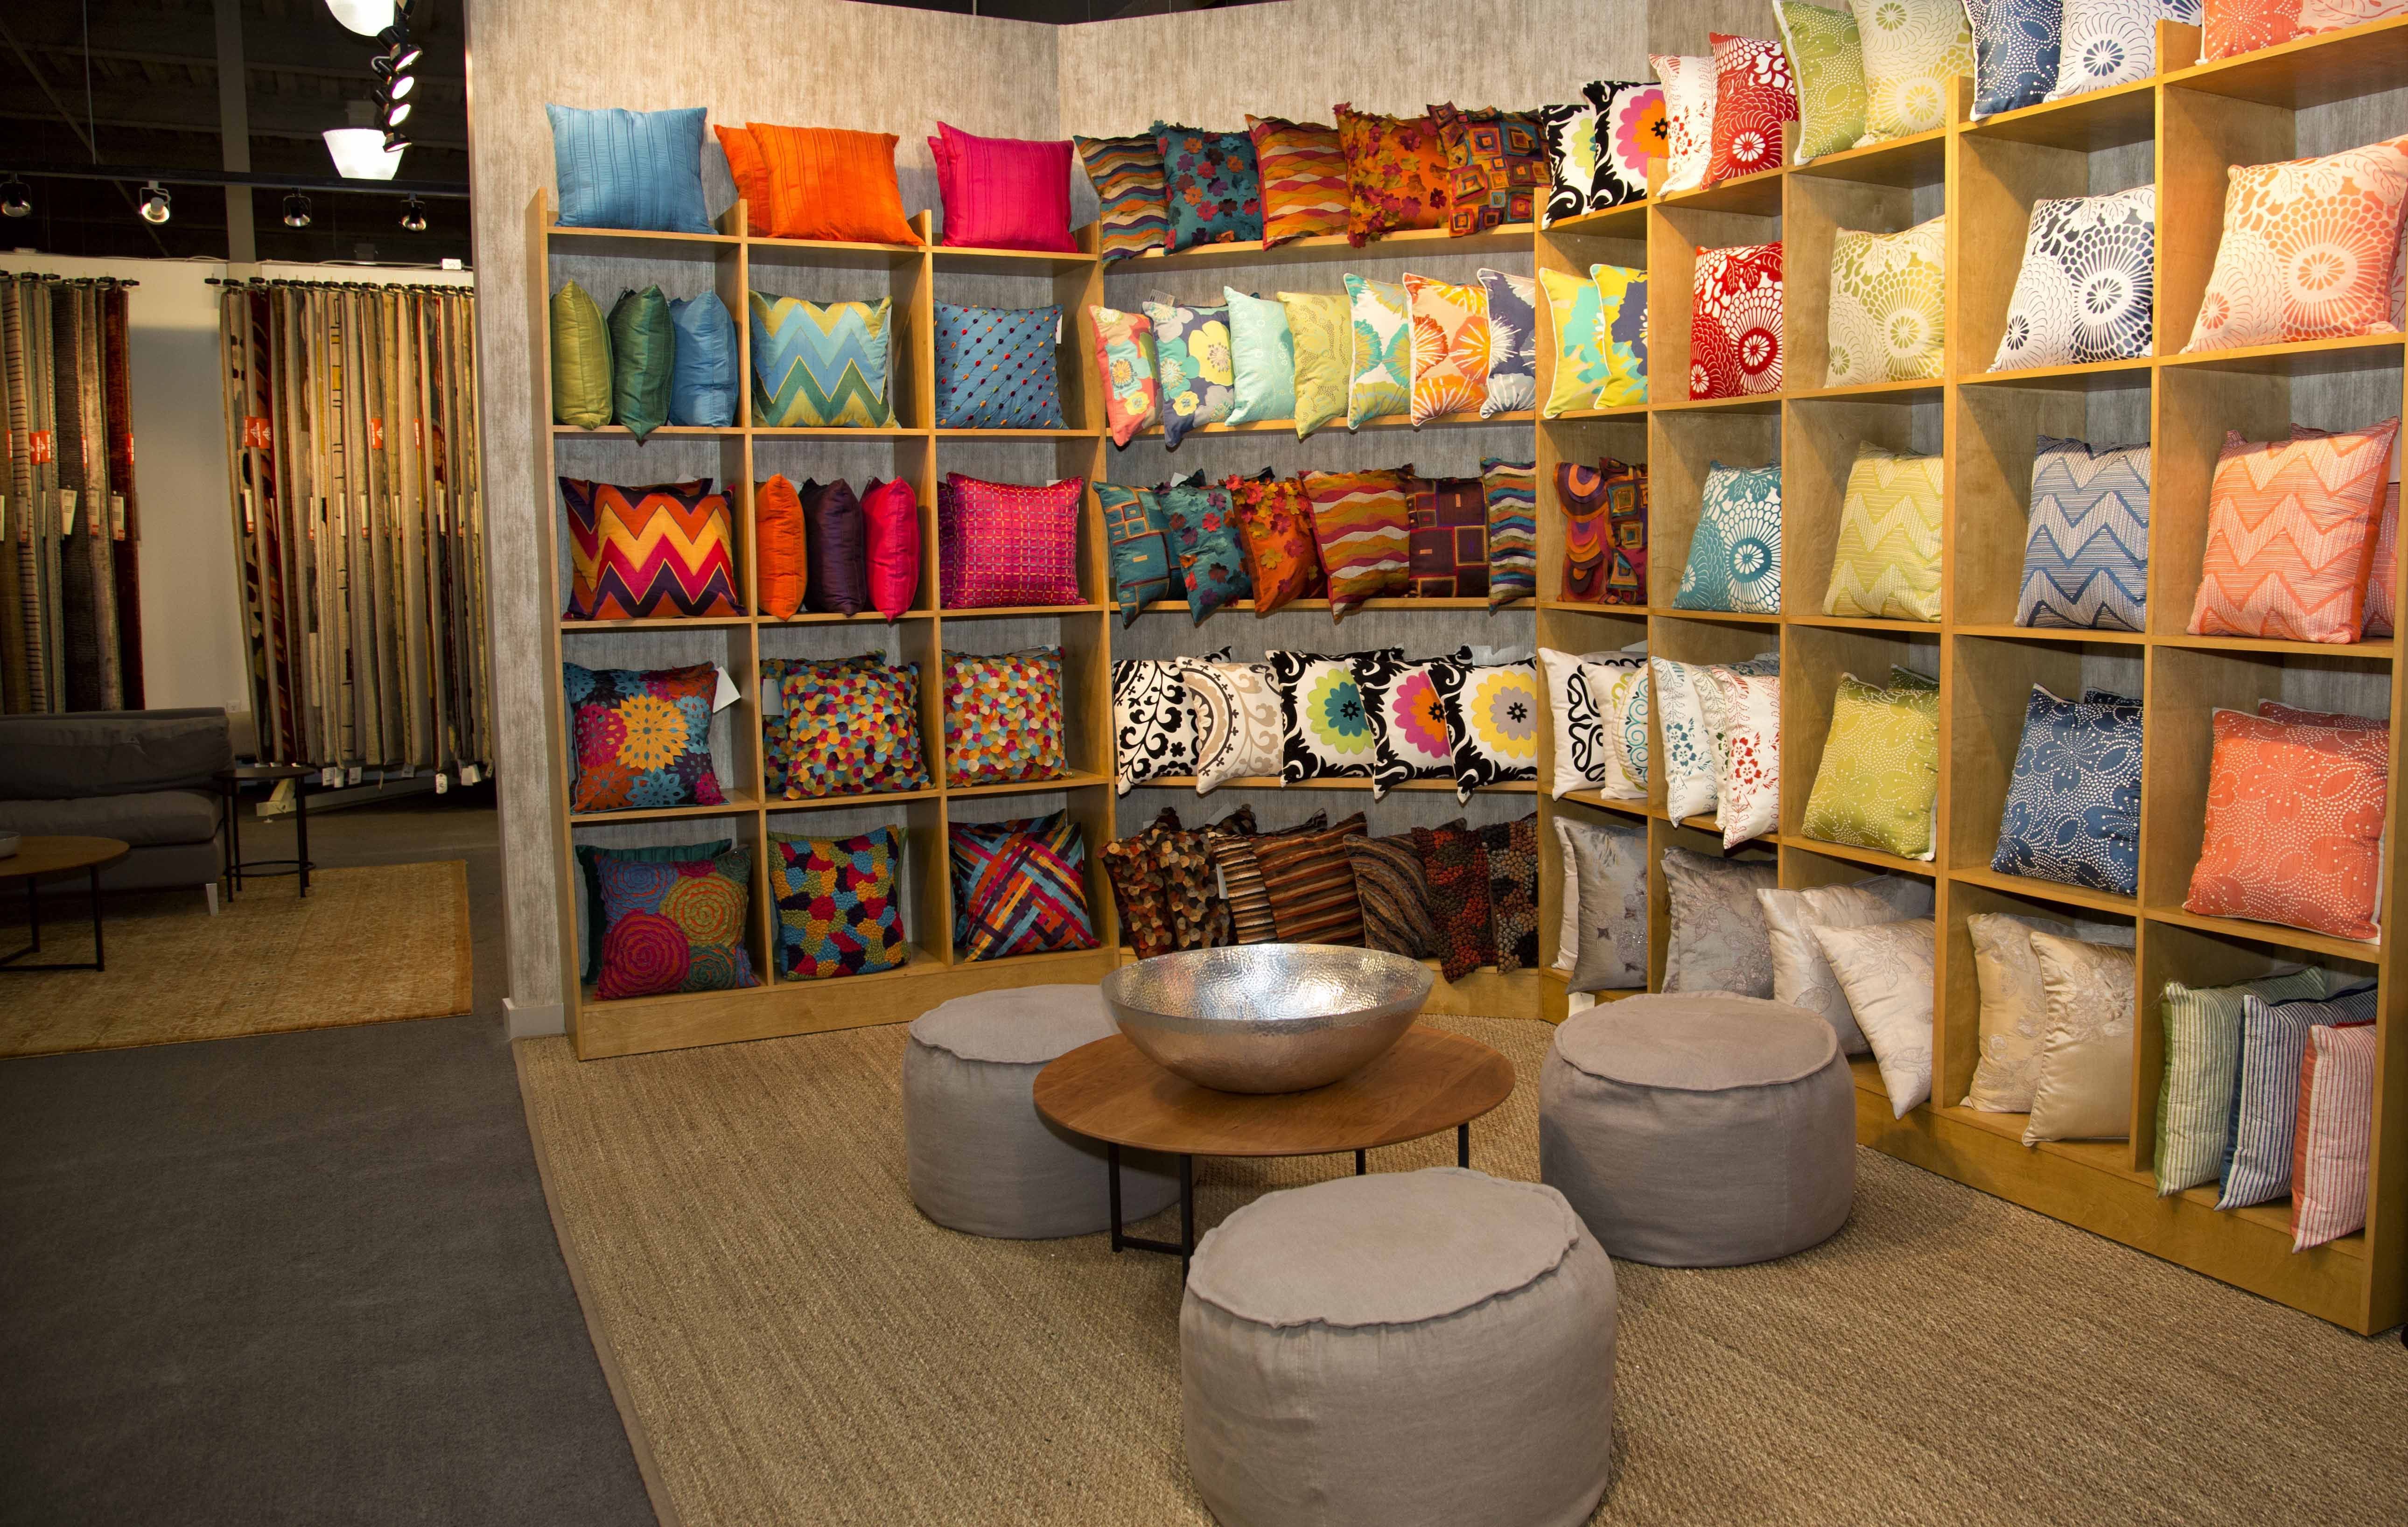 The Pillow Wall At The High Point Jaipur Showroom.